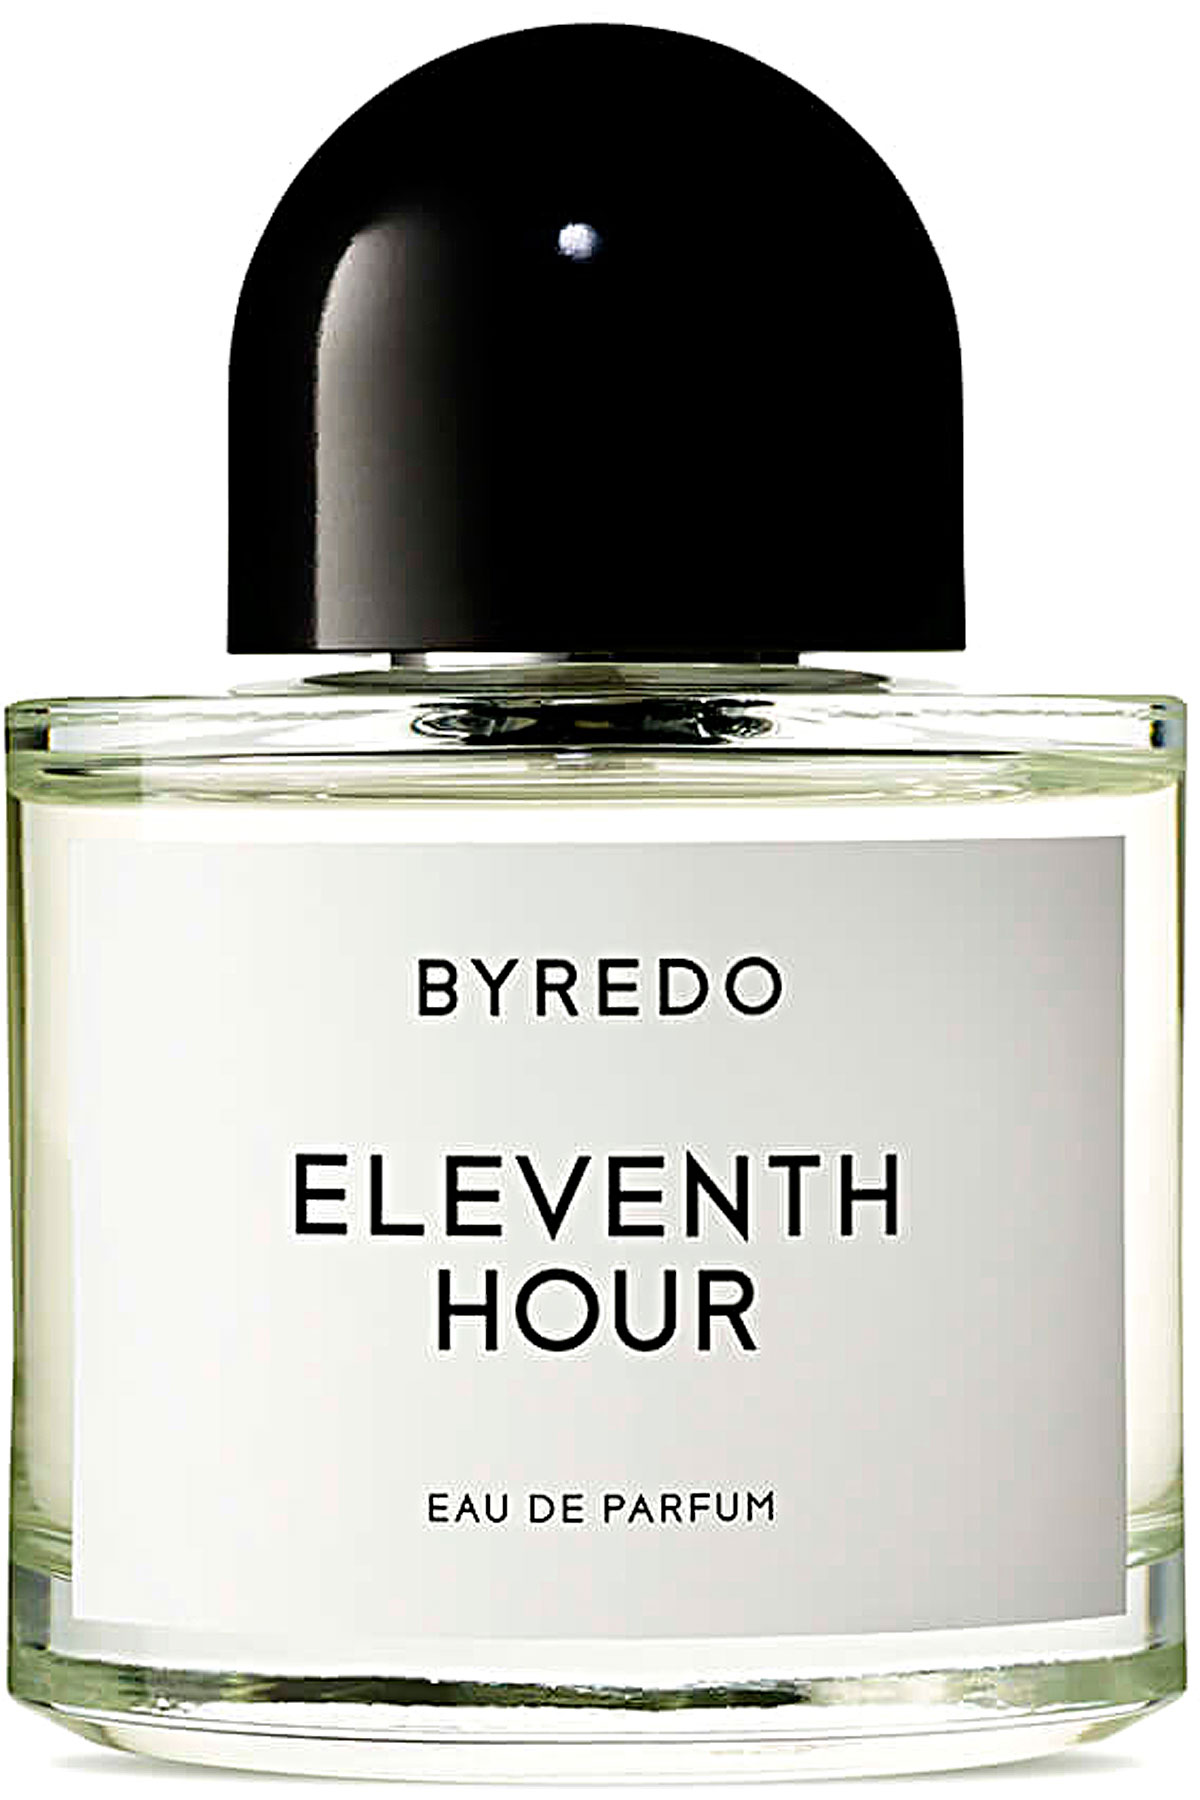 Byredo Fragrances for Men, Eleventh Hour - Eau De Parfum - 100 Ml, 2019, 100 ml